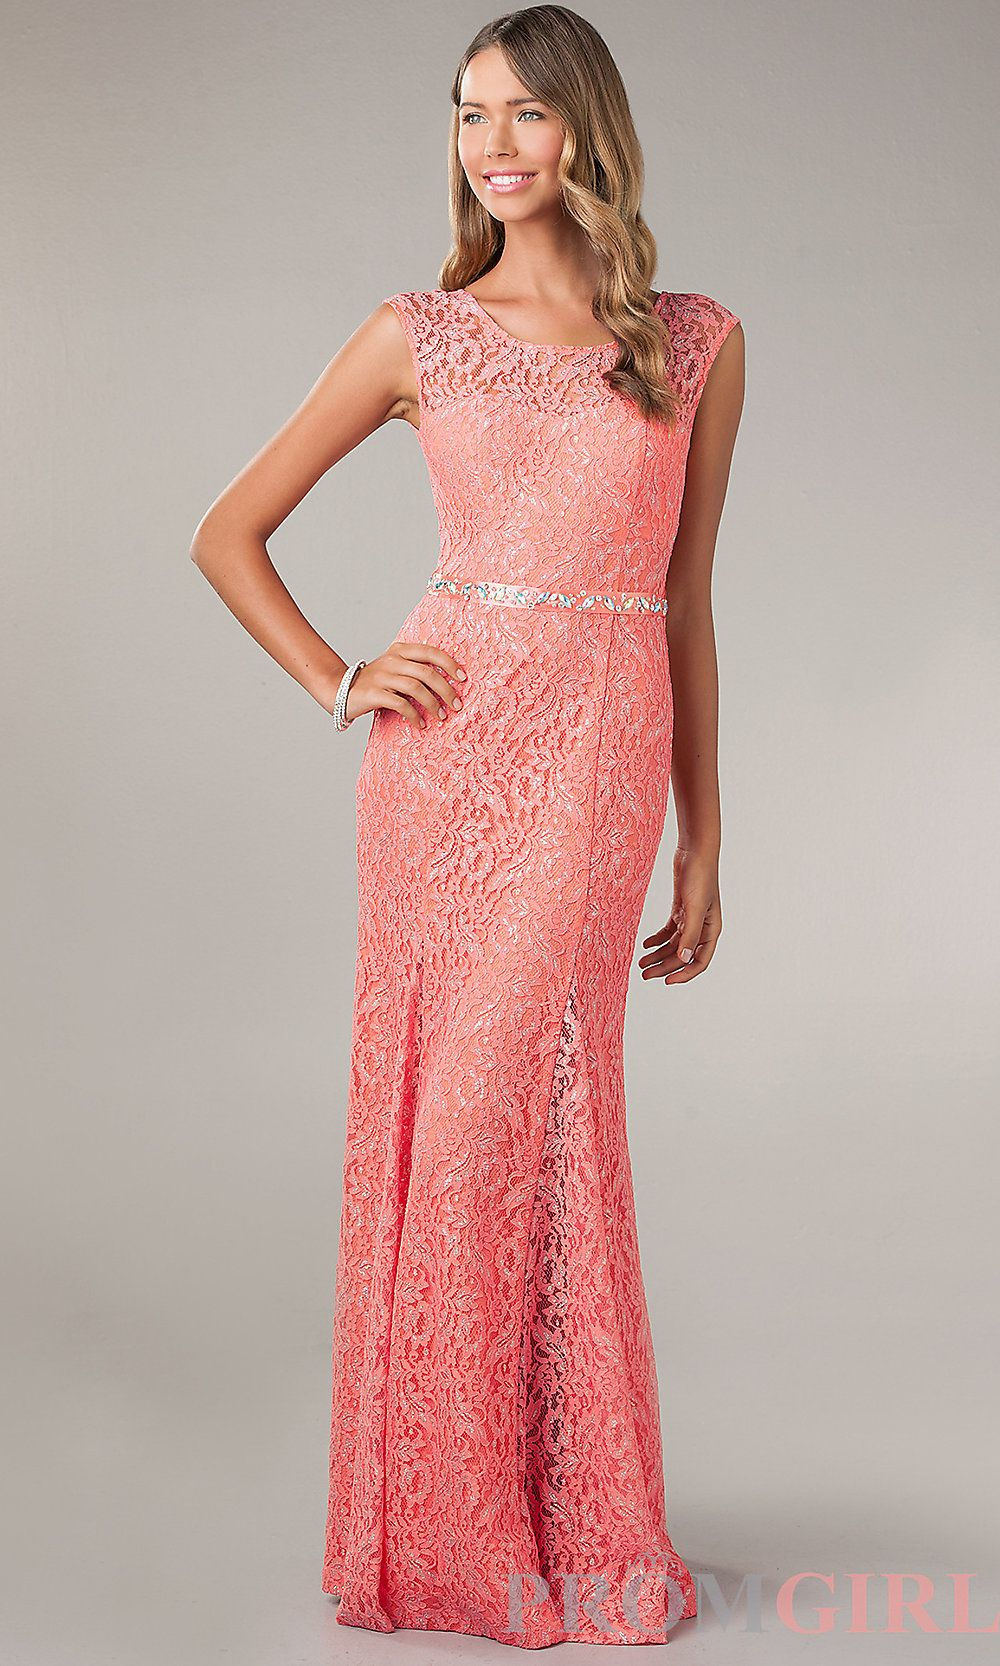 Long Lace Gown for Prom by Sequin Hearts | Lace evening gowns ...